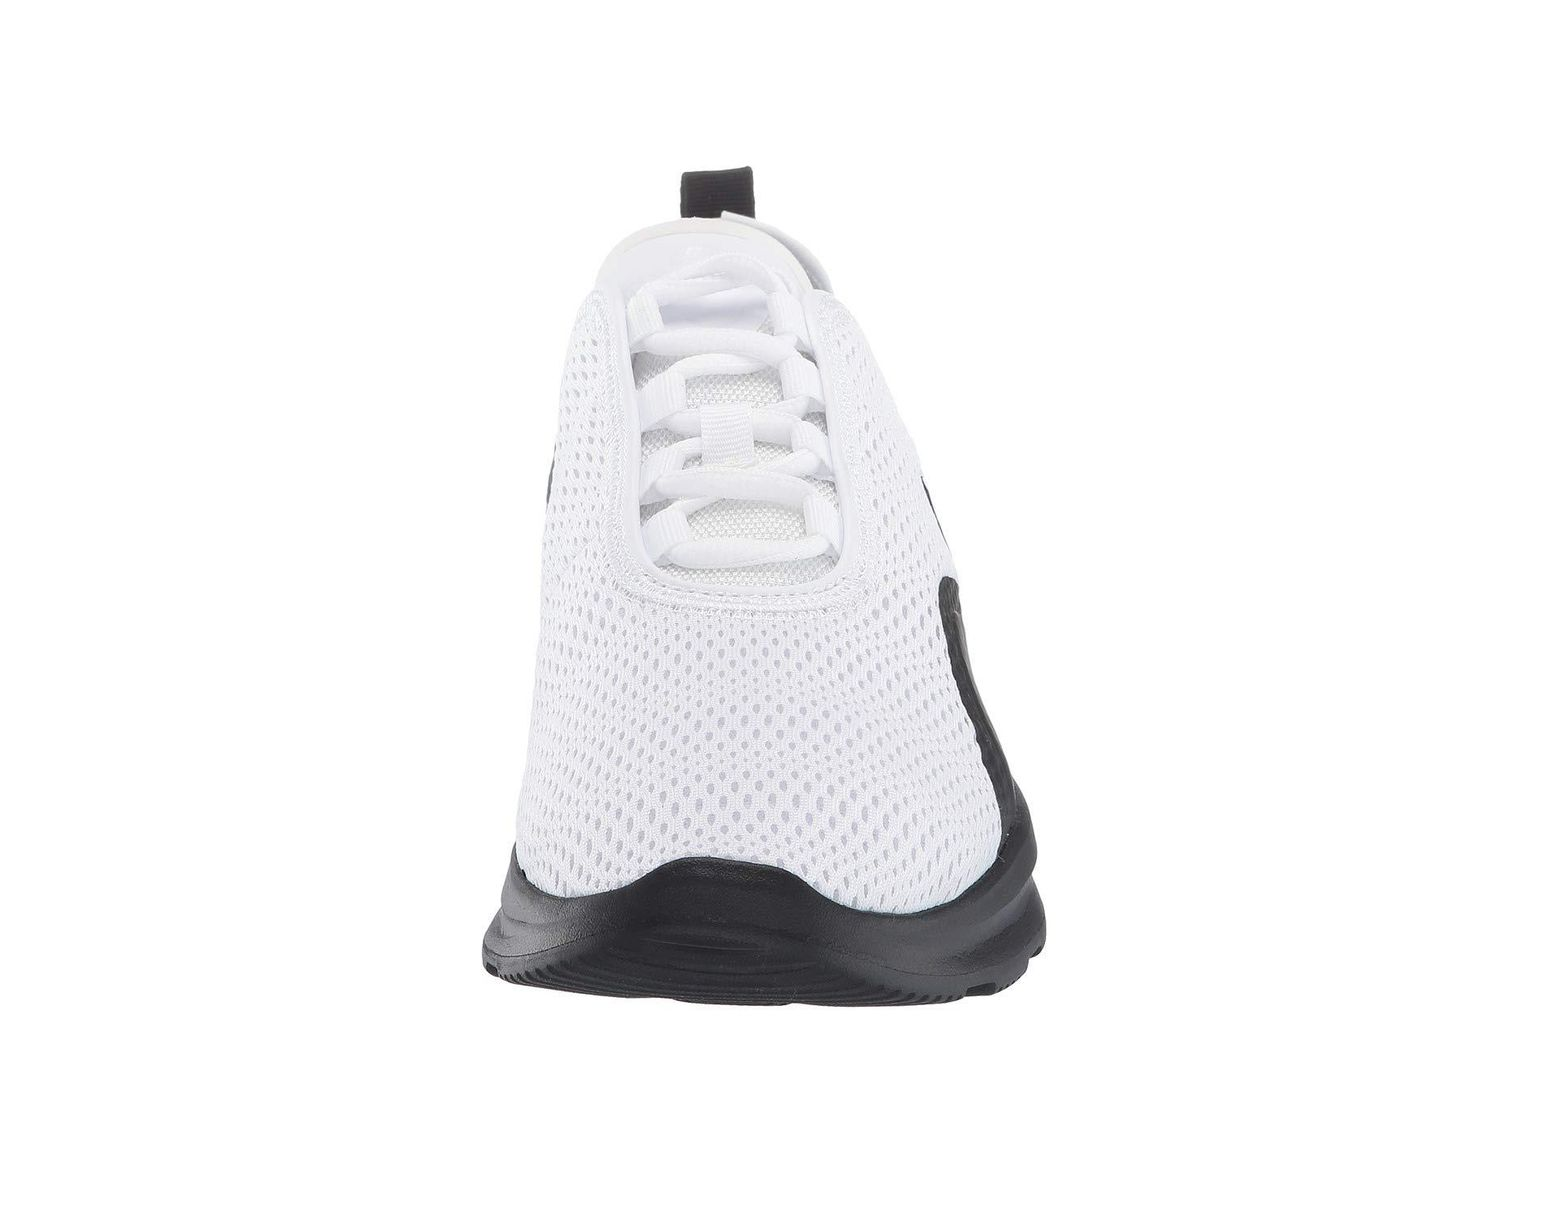 quality design 49244 dfd49 Nike Air Max Motion 2 (white laser Fuchsia pale Pink) Women s Running Shoes  in White - Save 21% - Lyst